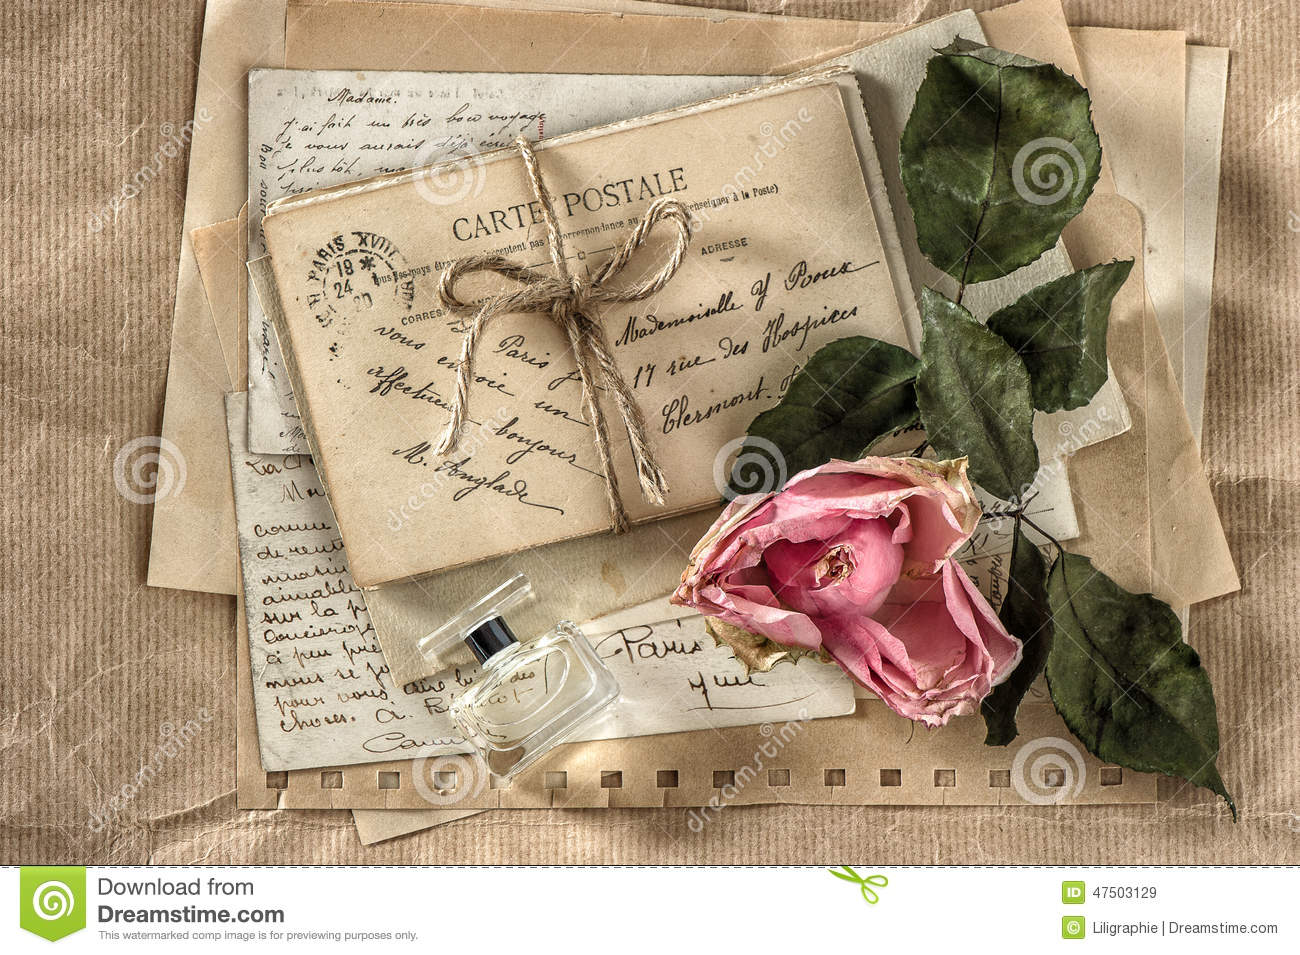 How to scrapbook dried flowers - Old Love Letters Perfume And Dried Rose Flower Scrapbook Paper